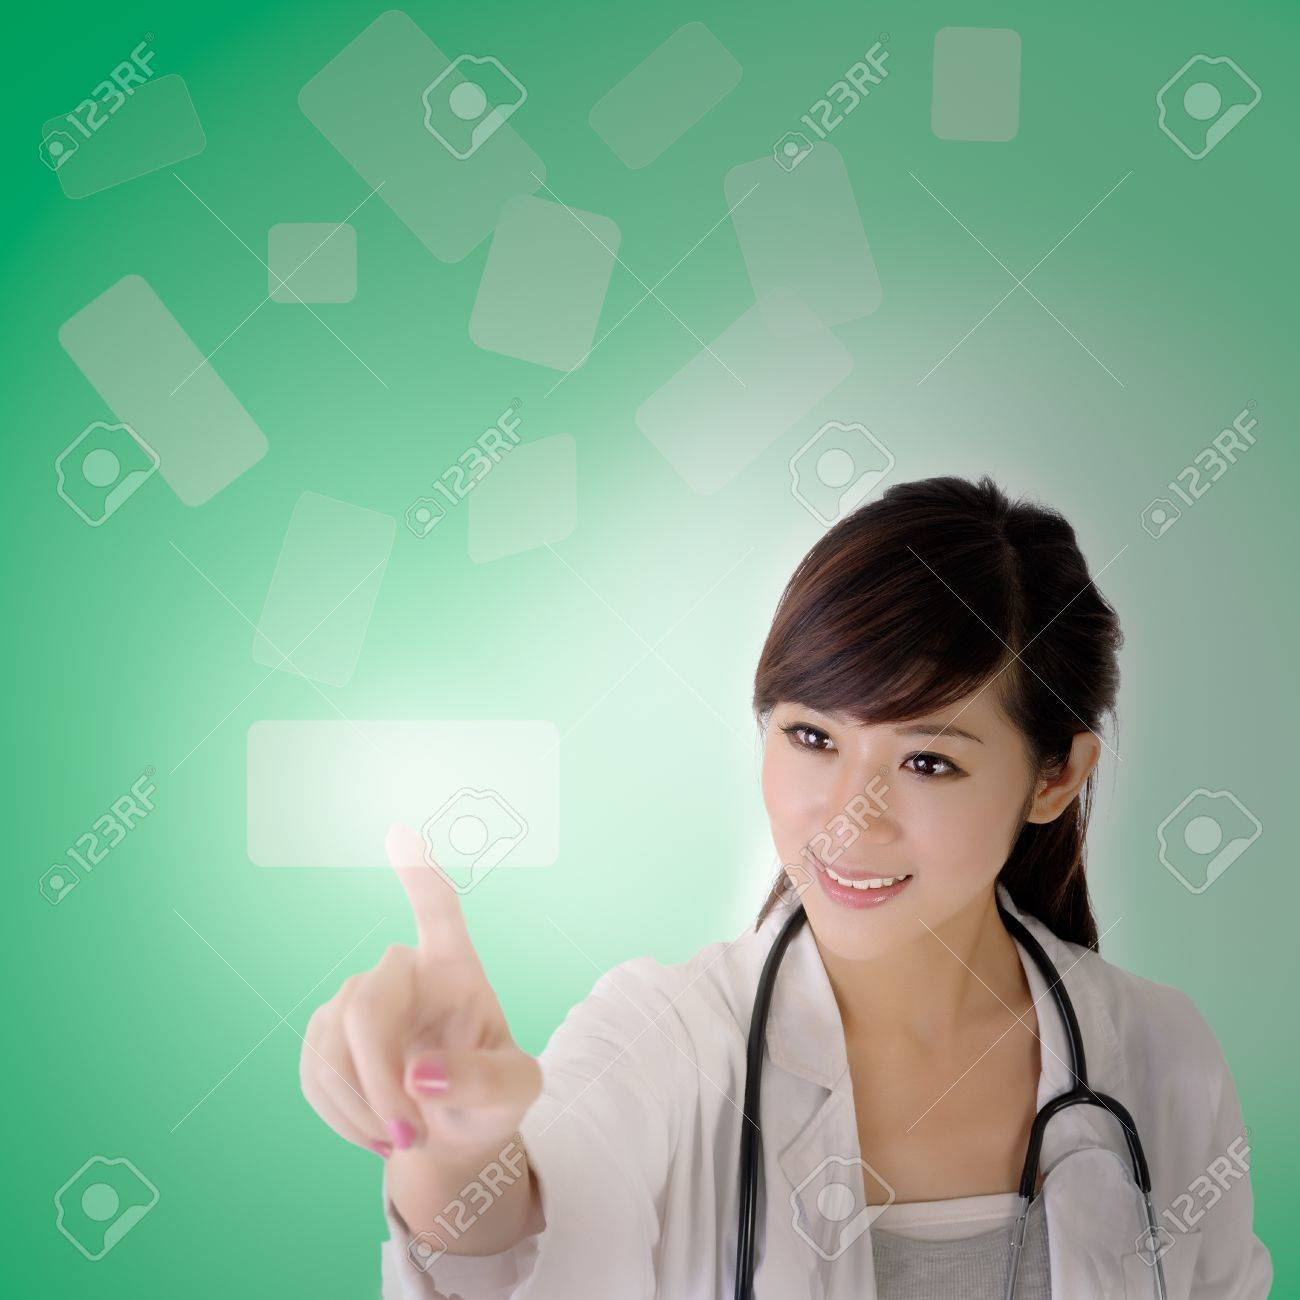 Medical doctor woman use innovative technologies on air. Stock Photo - 8355343